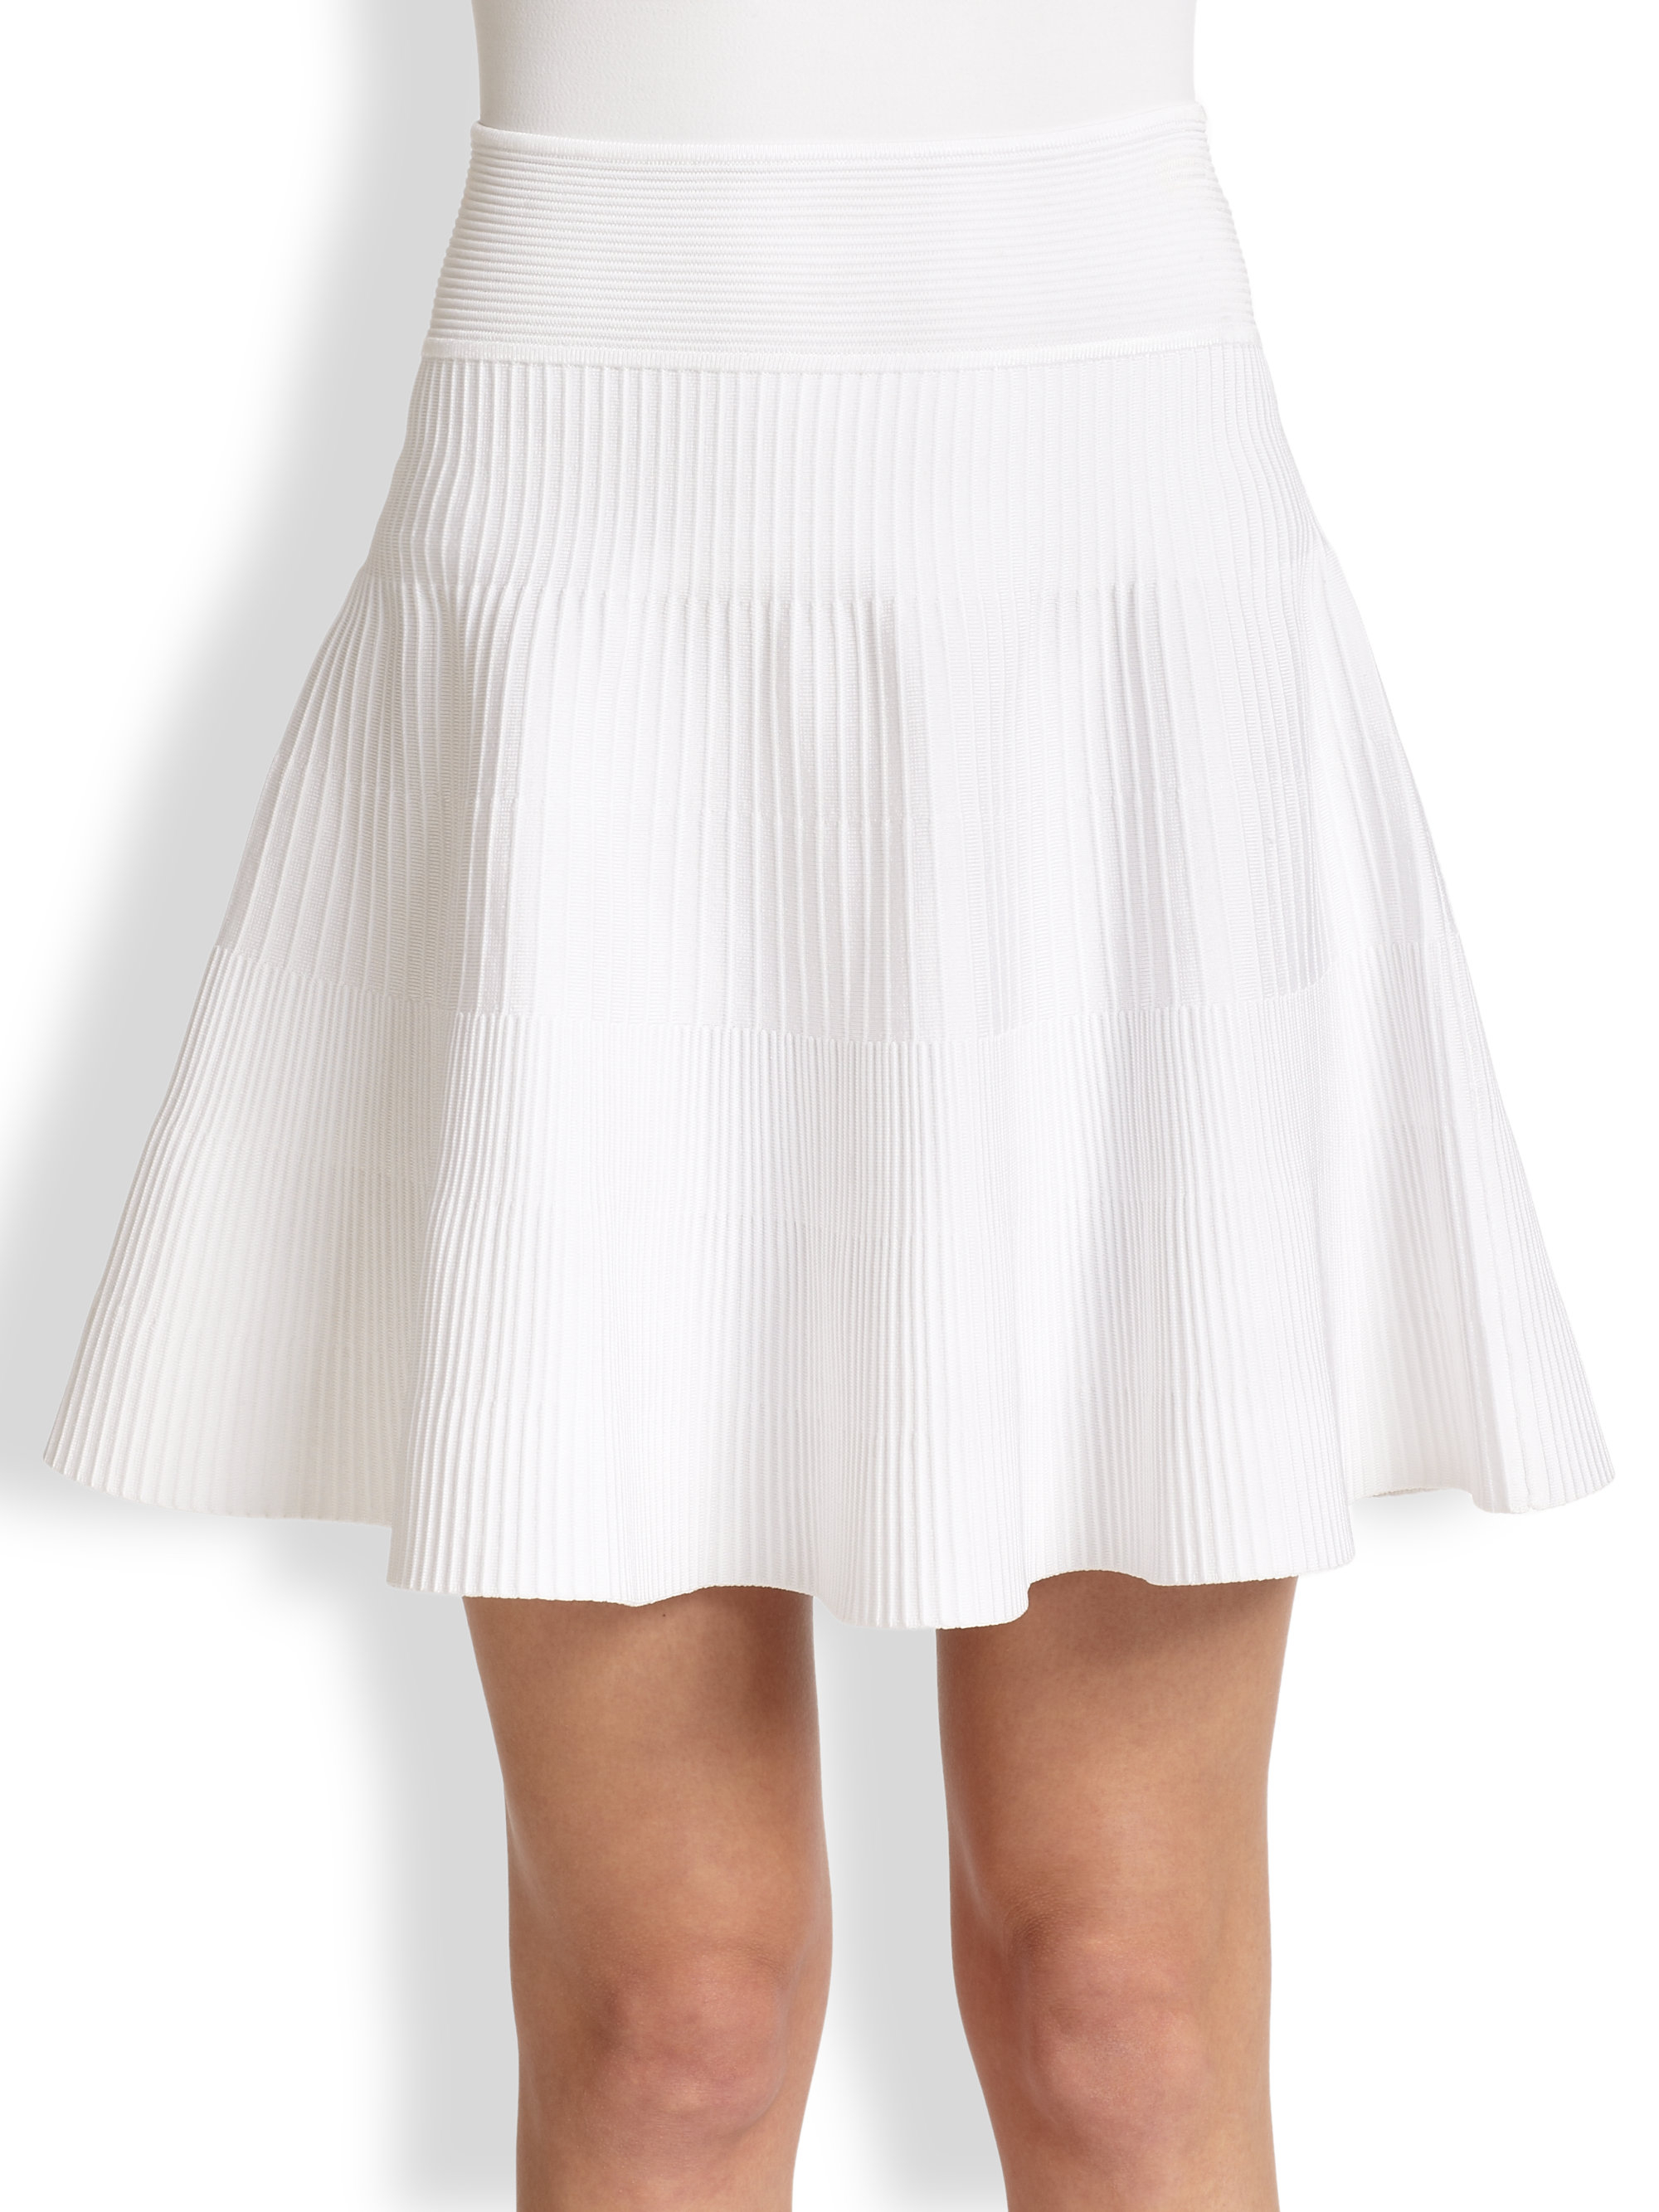 Milly Ribbed Knit Flared Skirt in White | Lyst